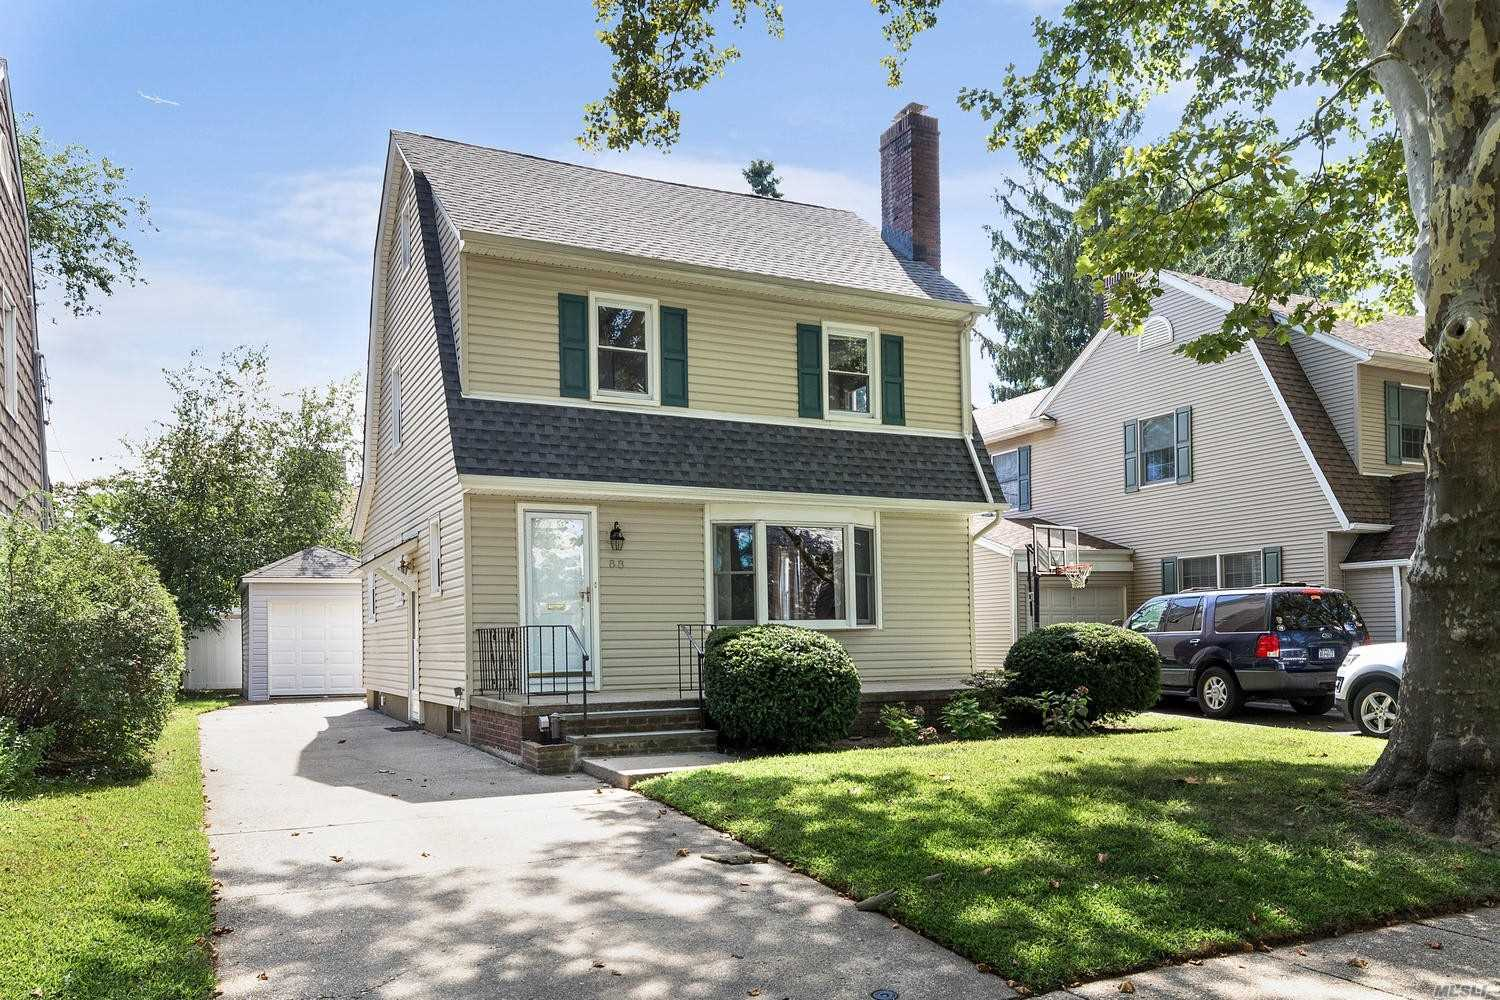 88 Cambridge Ave Garden City Ny 11530 Sold Nystatemls Listing 10532932